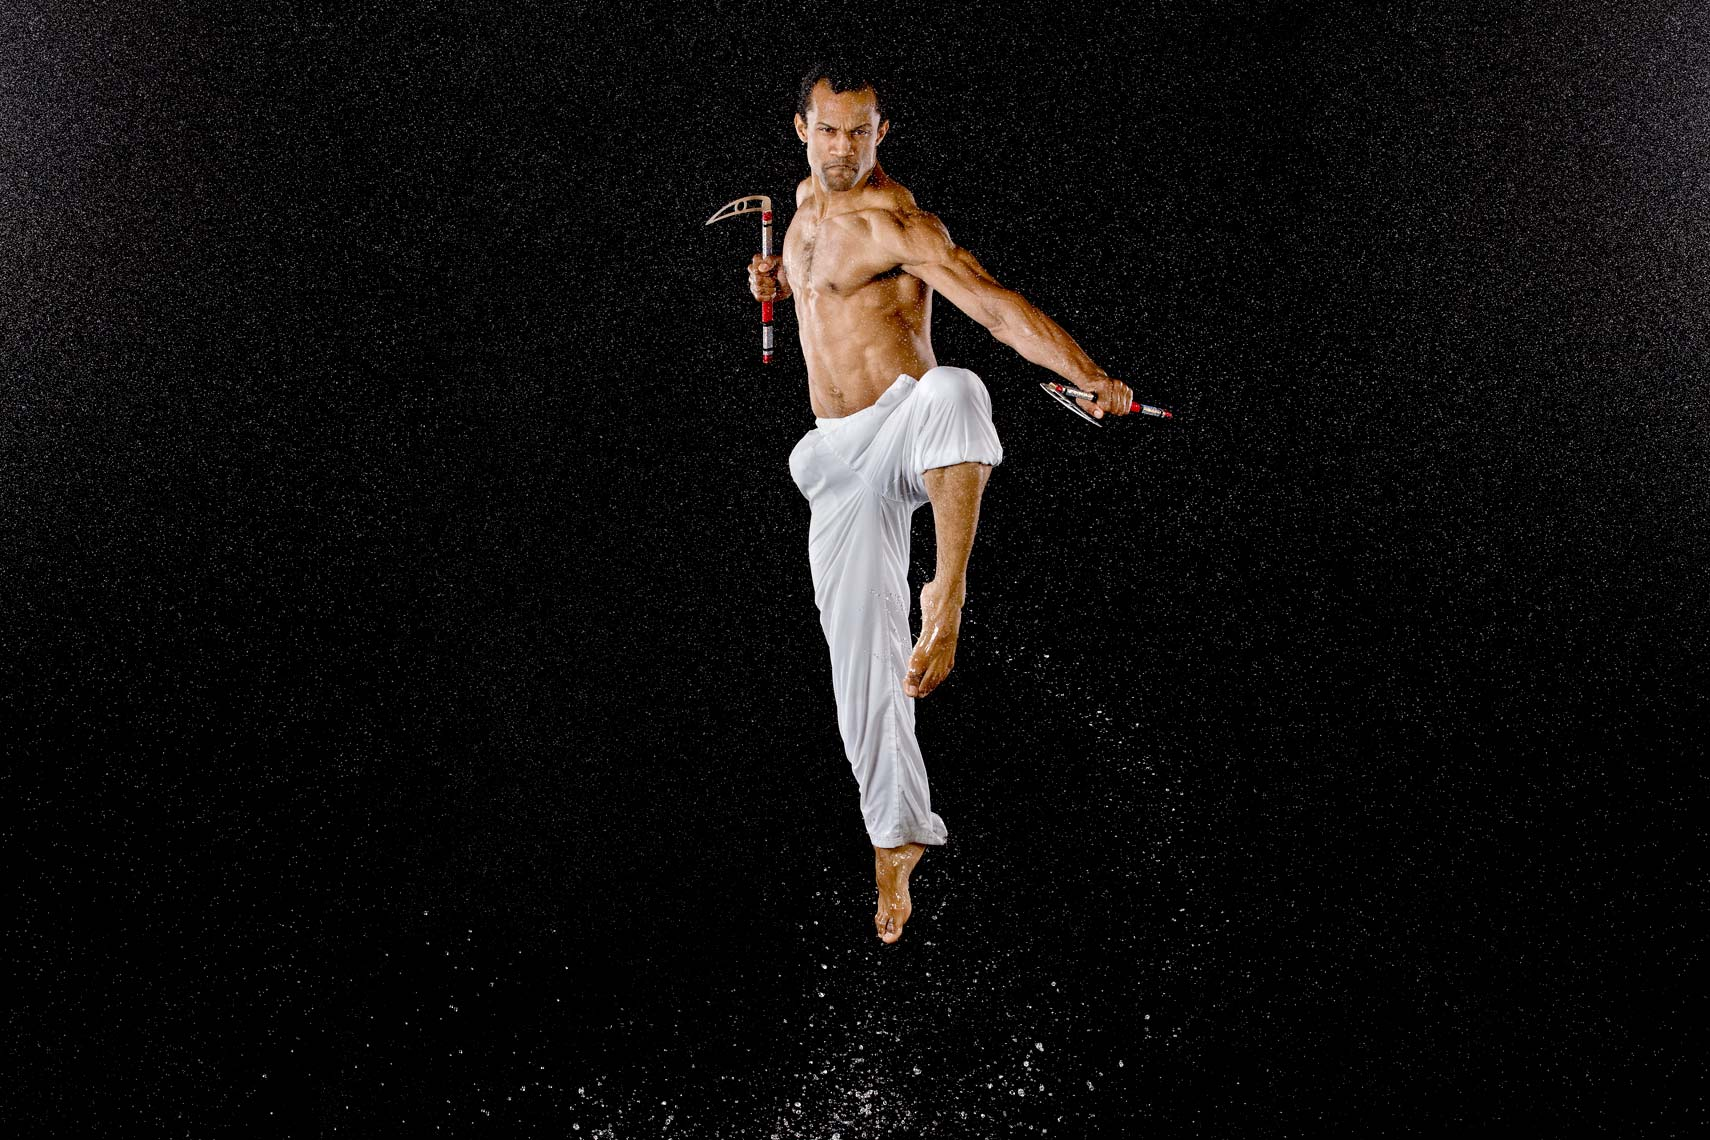 Martial-Art-Splash-3-0369-Edited.jpg